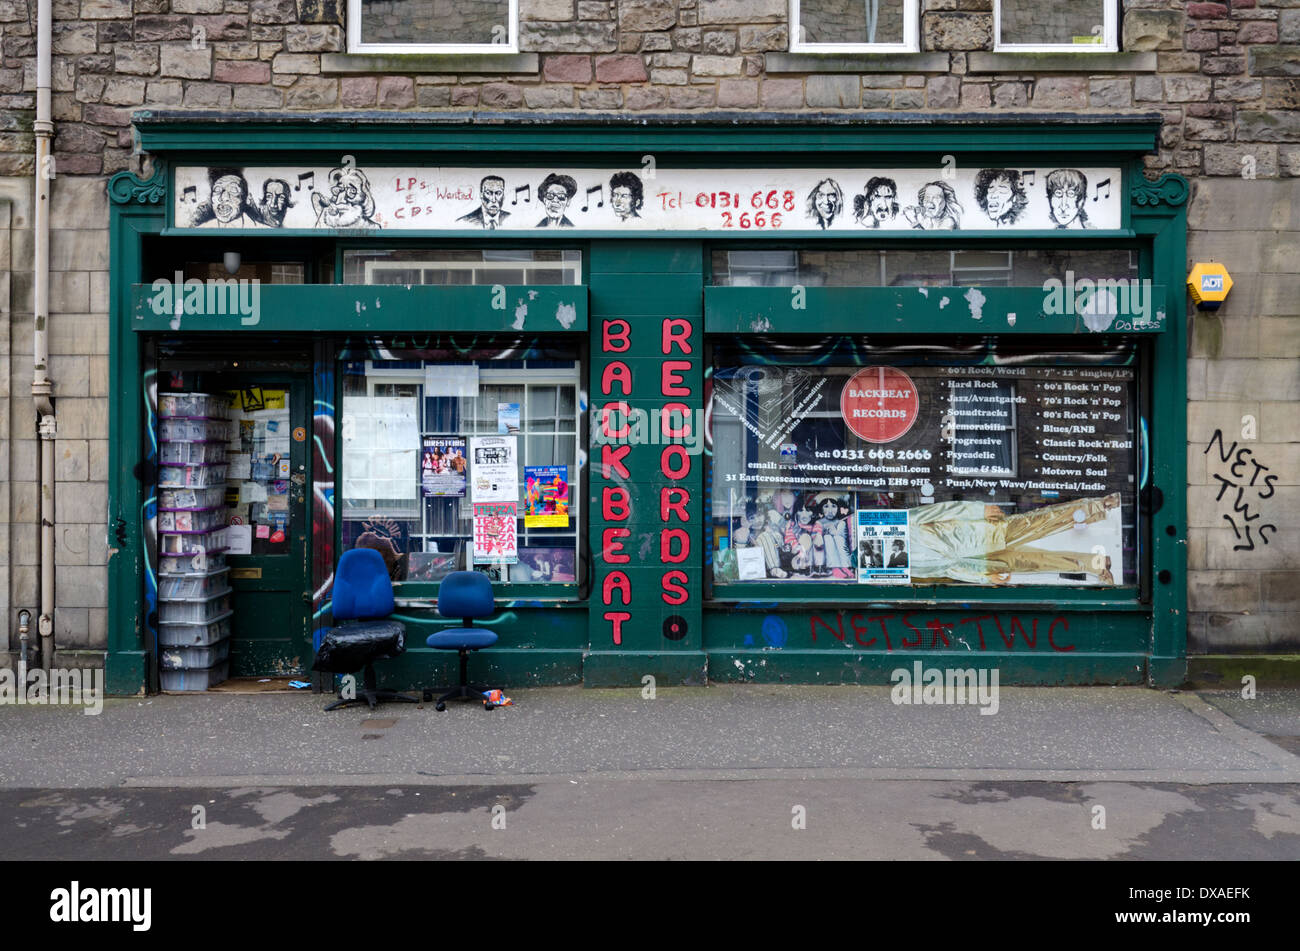 Backbeat Records - a secondhand record and CD store in East Crosscauseway, Edinburgh. - Stock Image